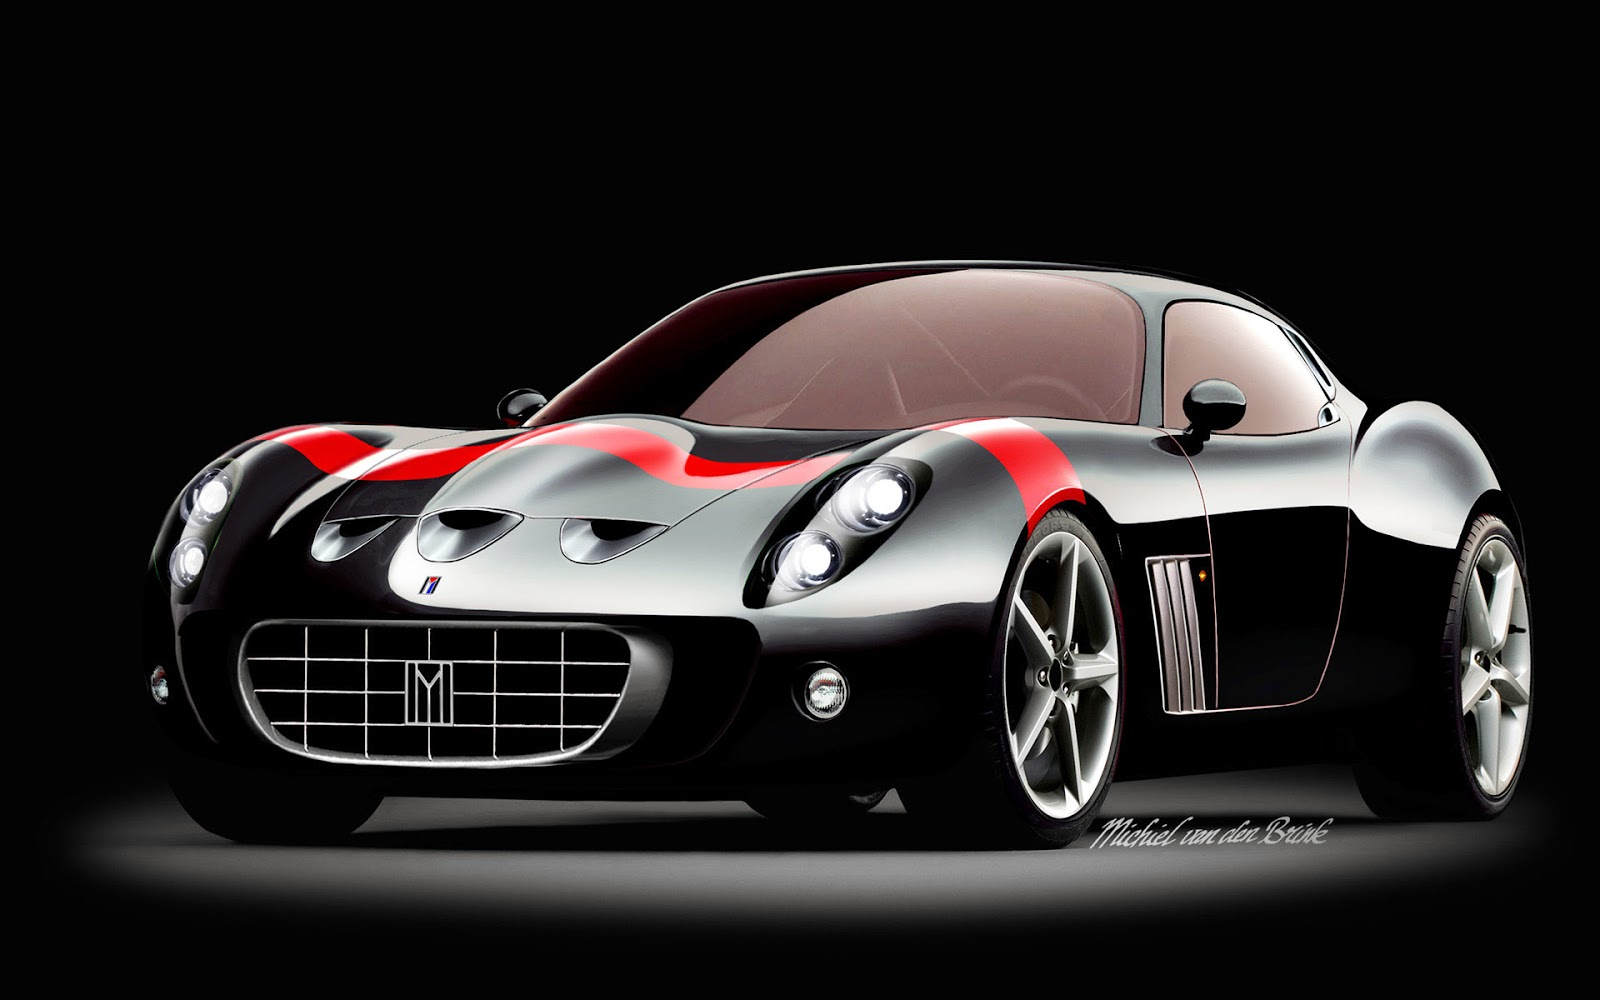 Lovable Images: Ferrari Car HD Pictures Free Download